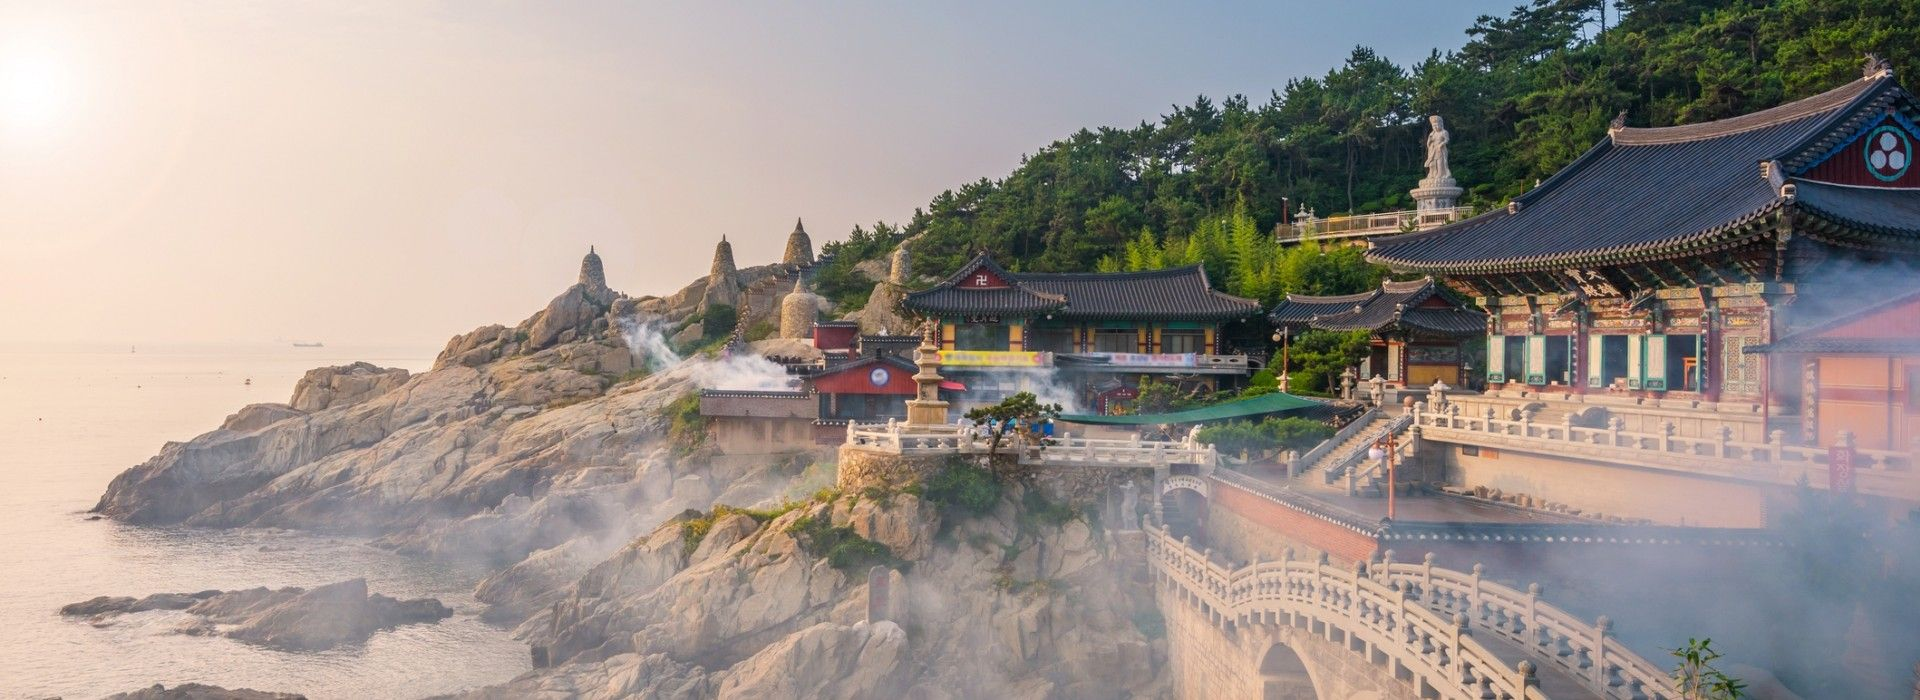 Special interests and hobbies Tours in South Korea